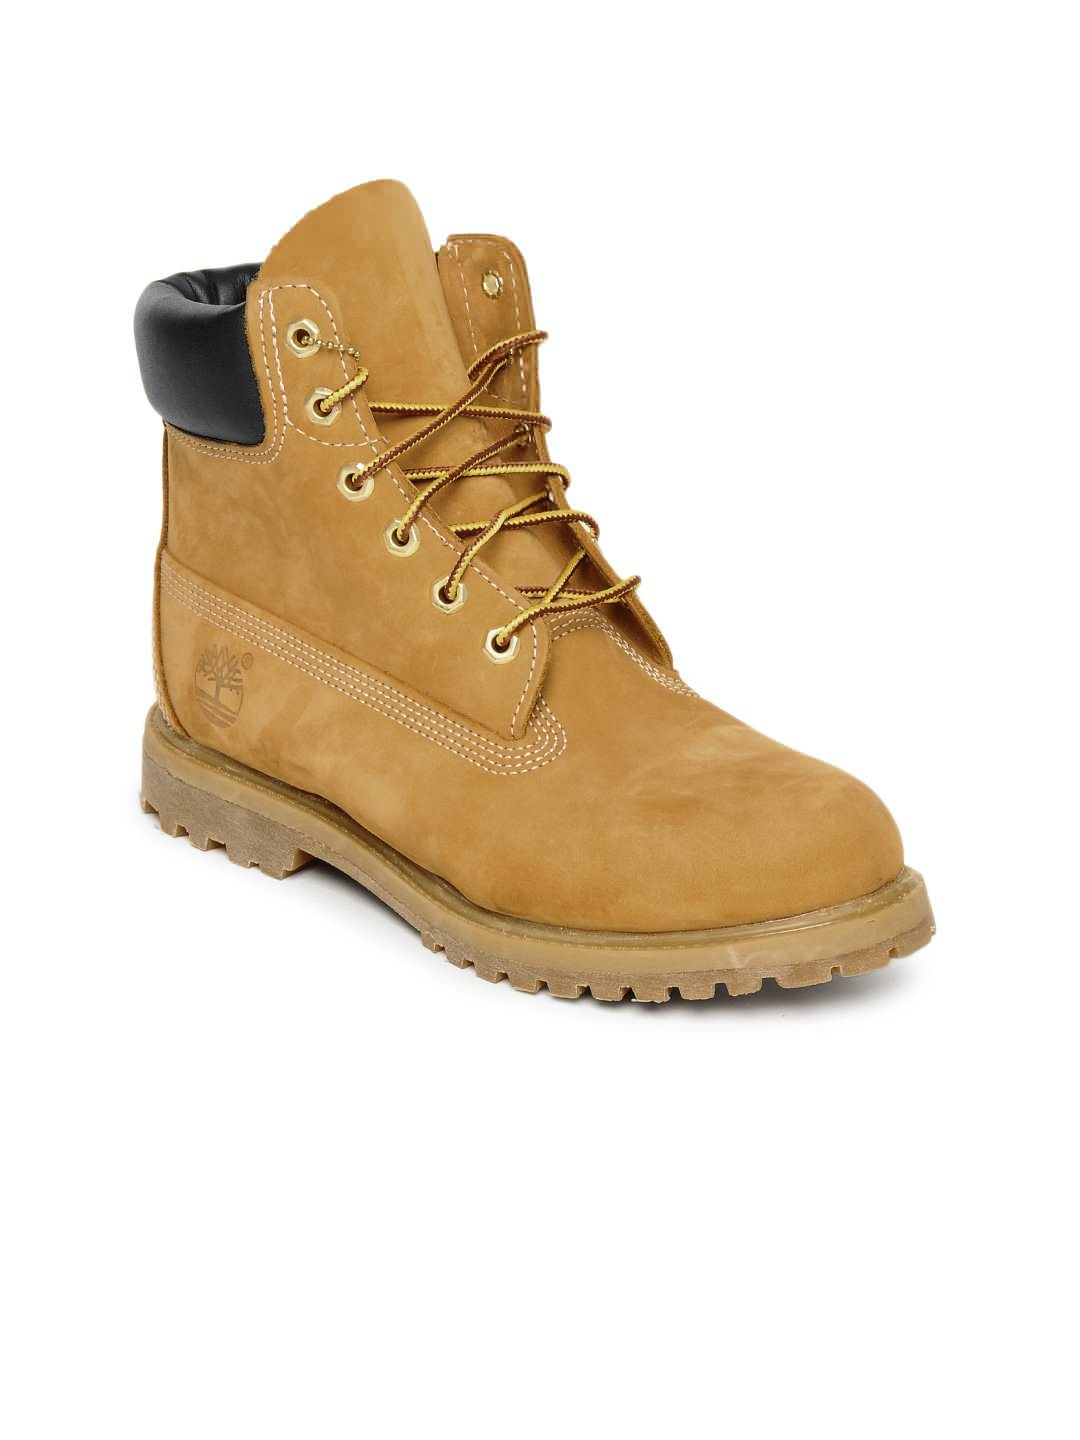 Timberland Boots For Men Price Images 1000 Ideas About